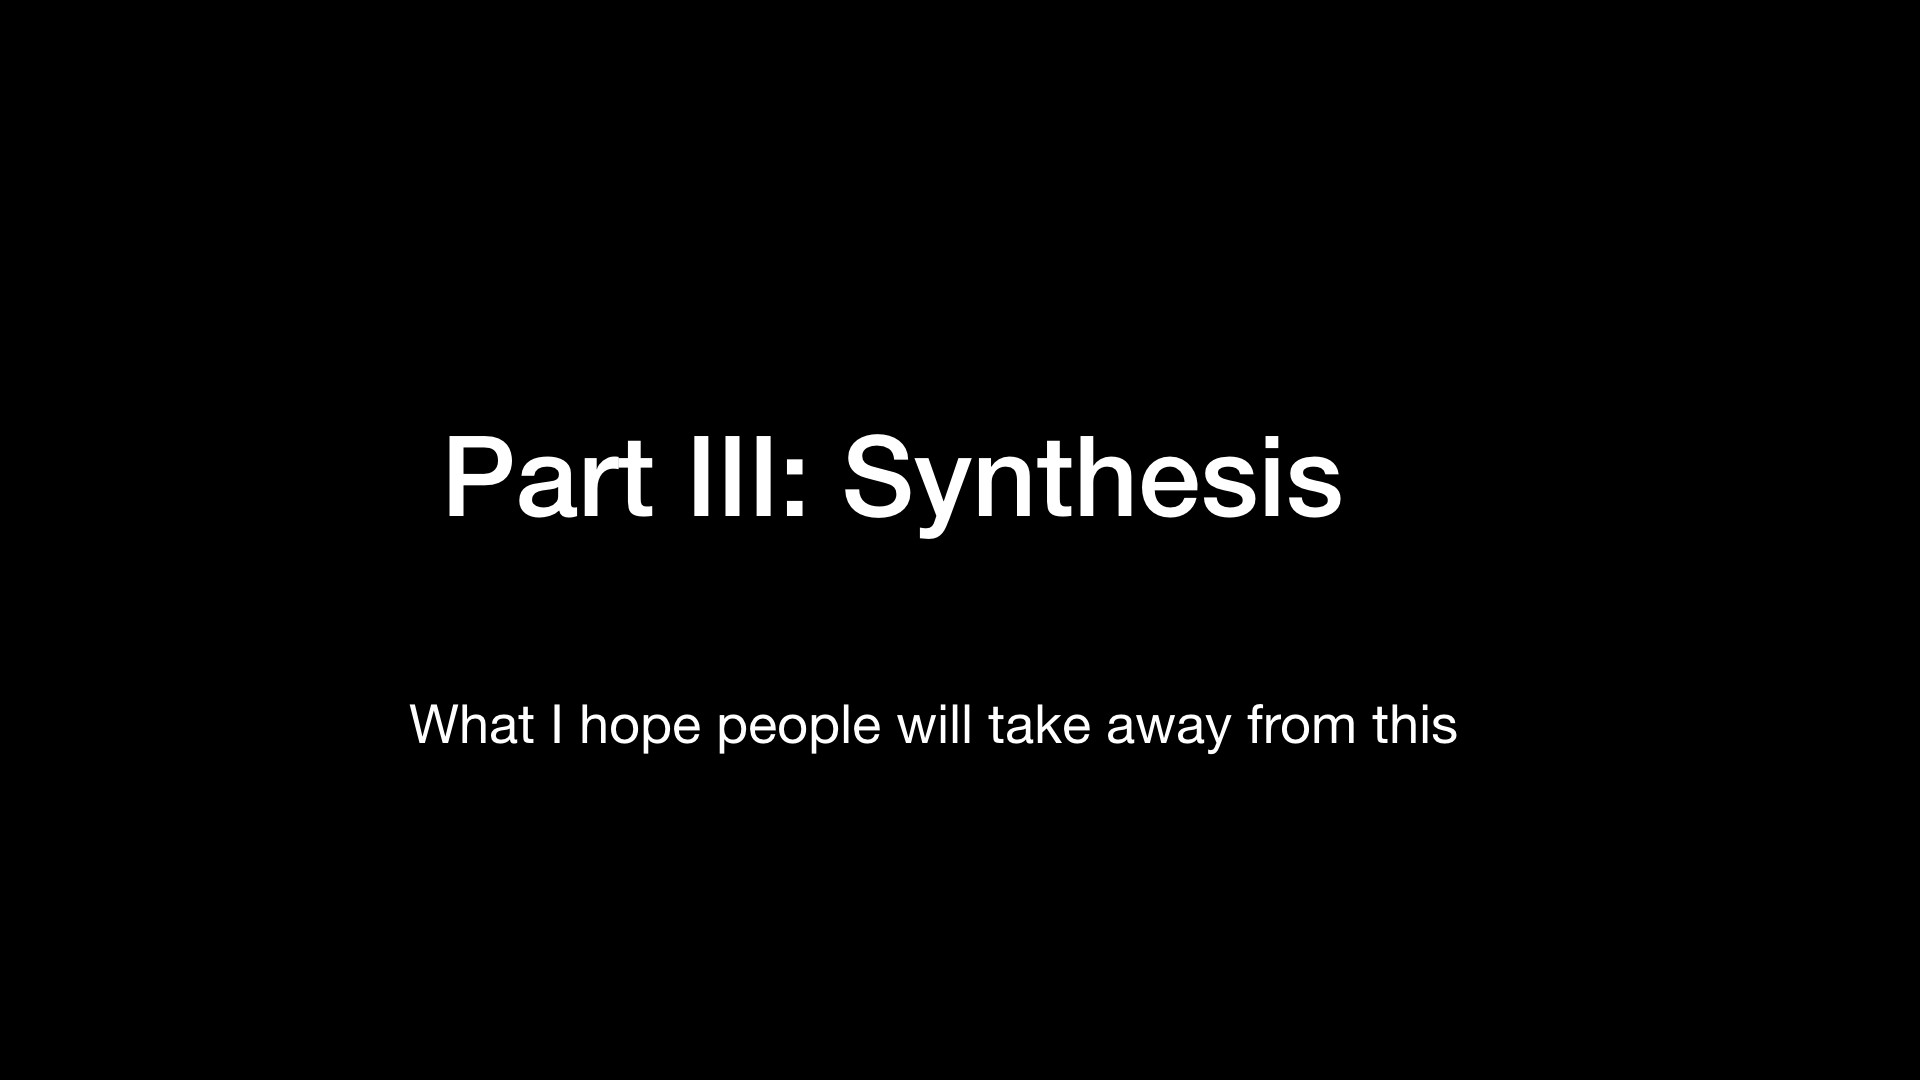 Part III: Synthesis